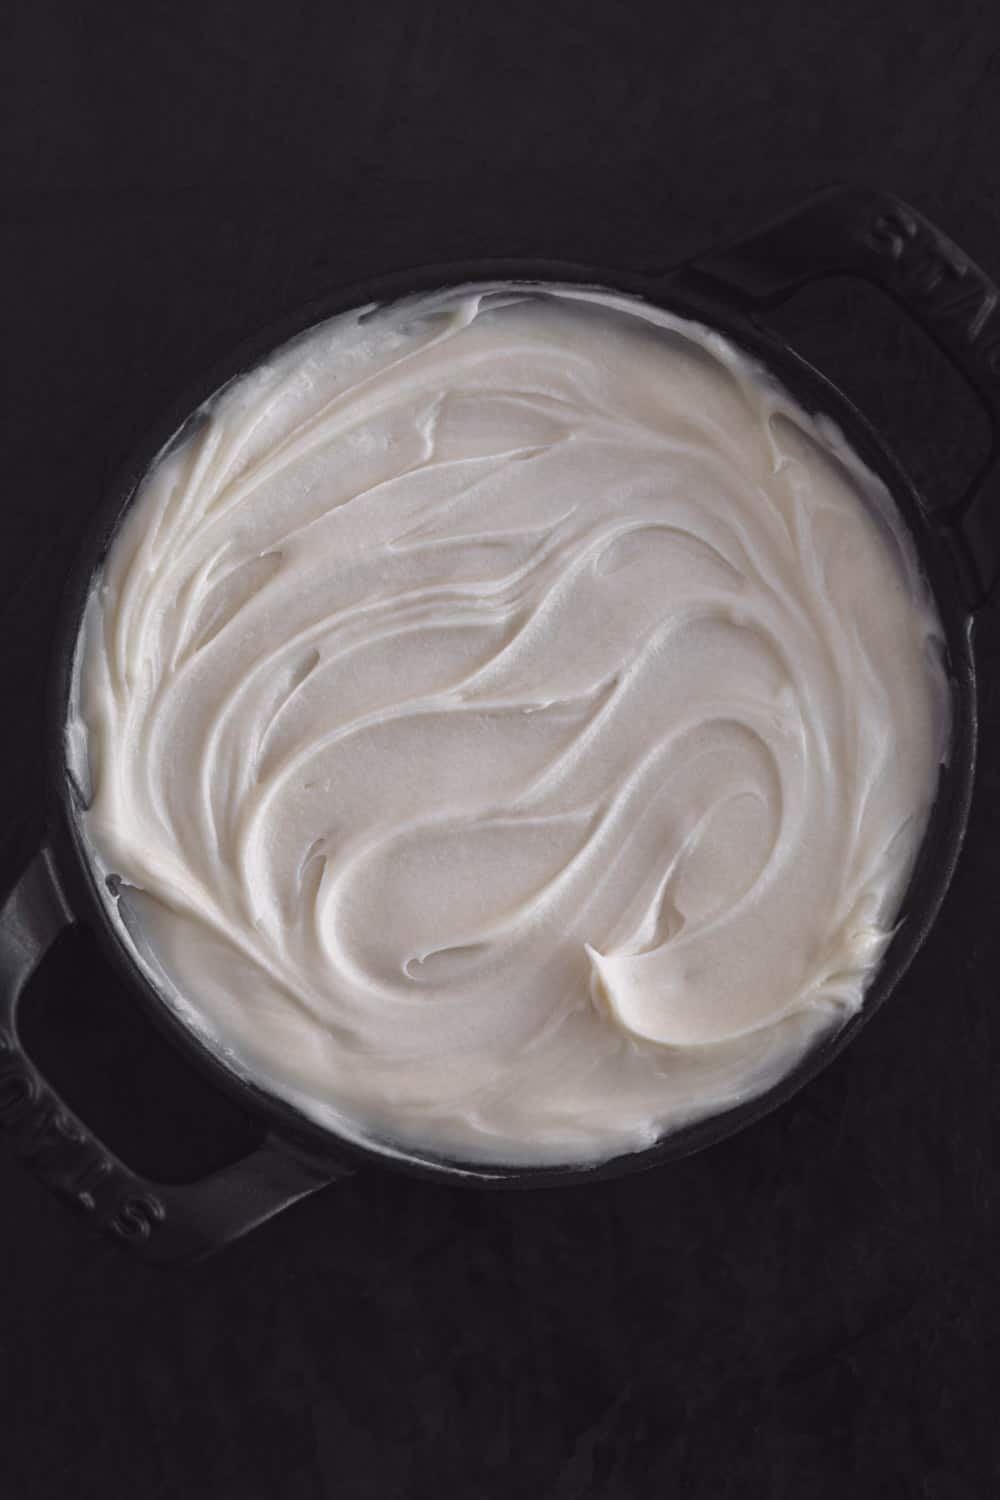 Vanilla mascarpone filling, freshly made, in black bowl with black handles, on a black background; overhead shot.